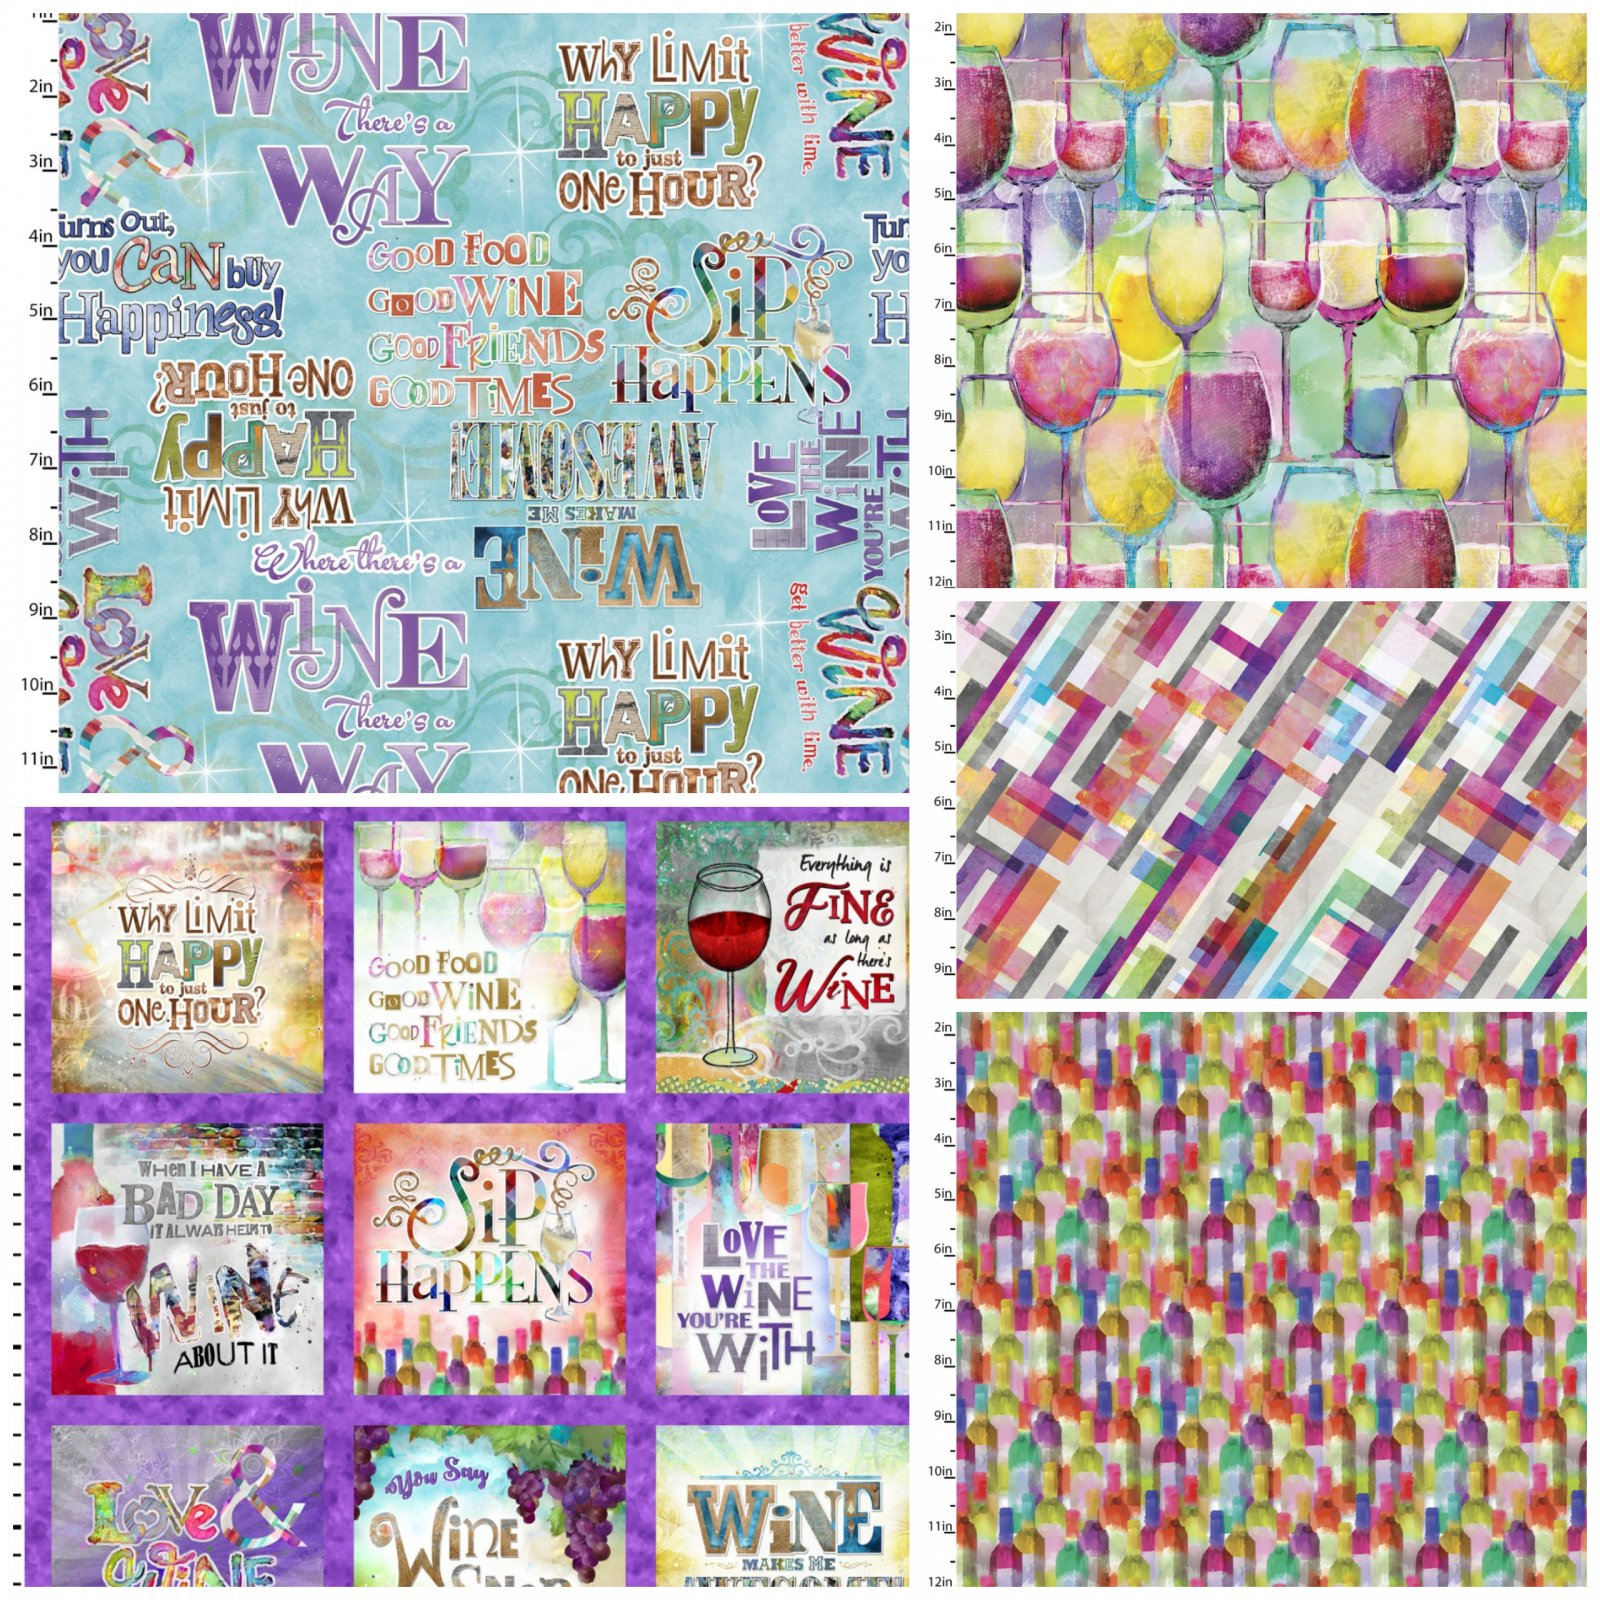 Sip and Snip Curated Fat Quarter Bundle - by Connie Haley for 3 Wishes Fabrics - Includes 4 Fat Quarters and 1 Panel